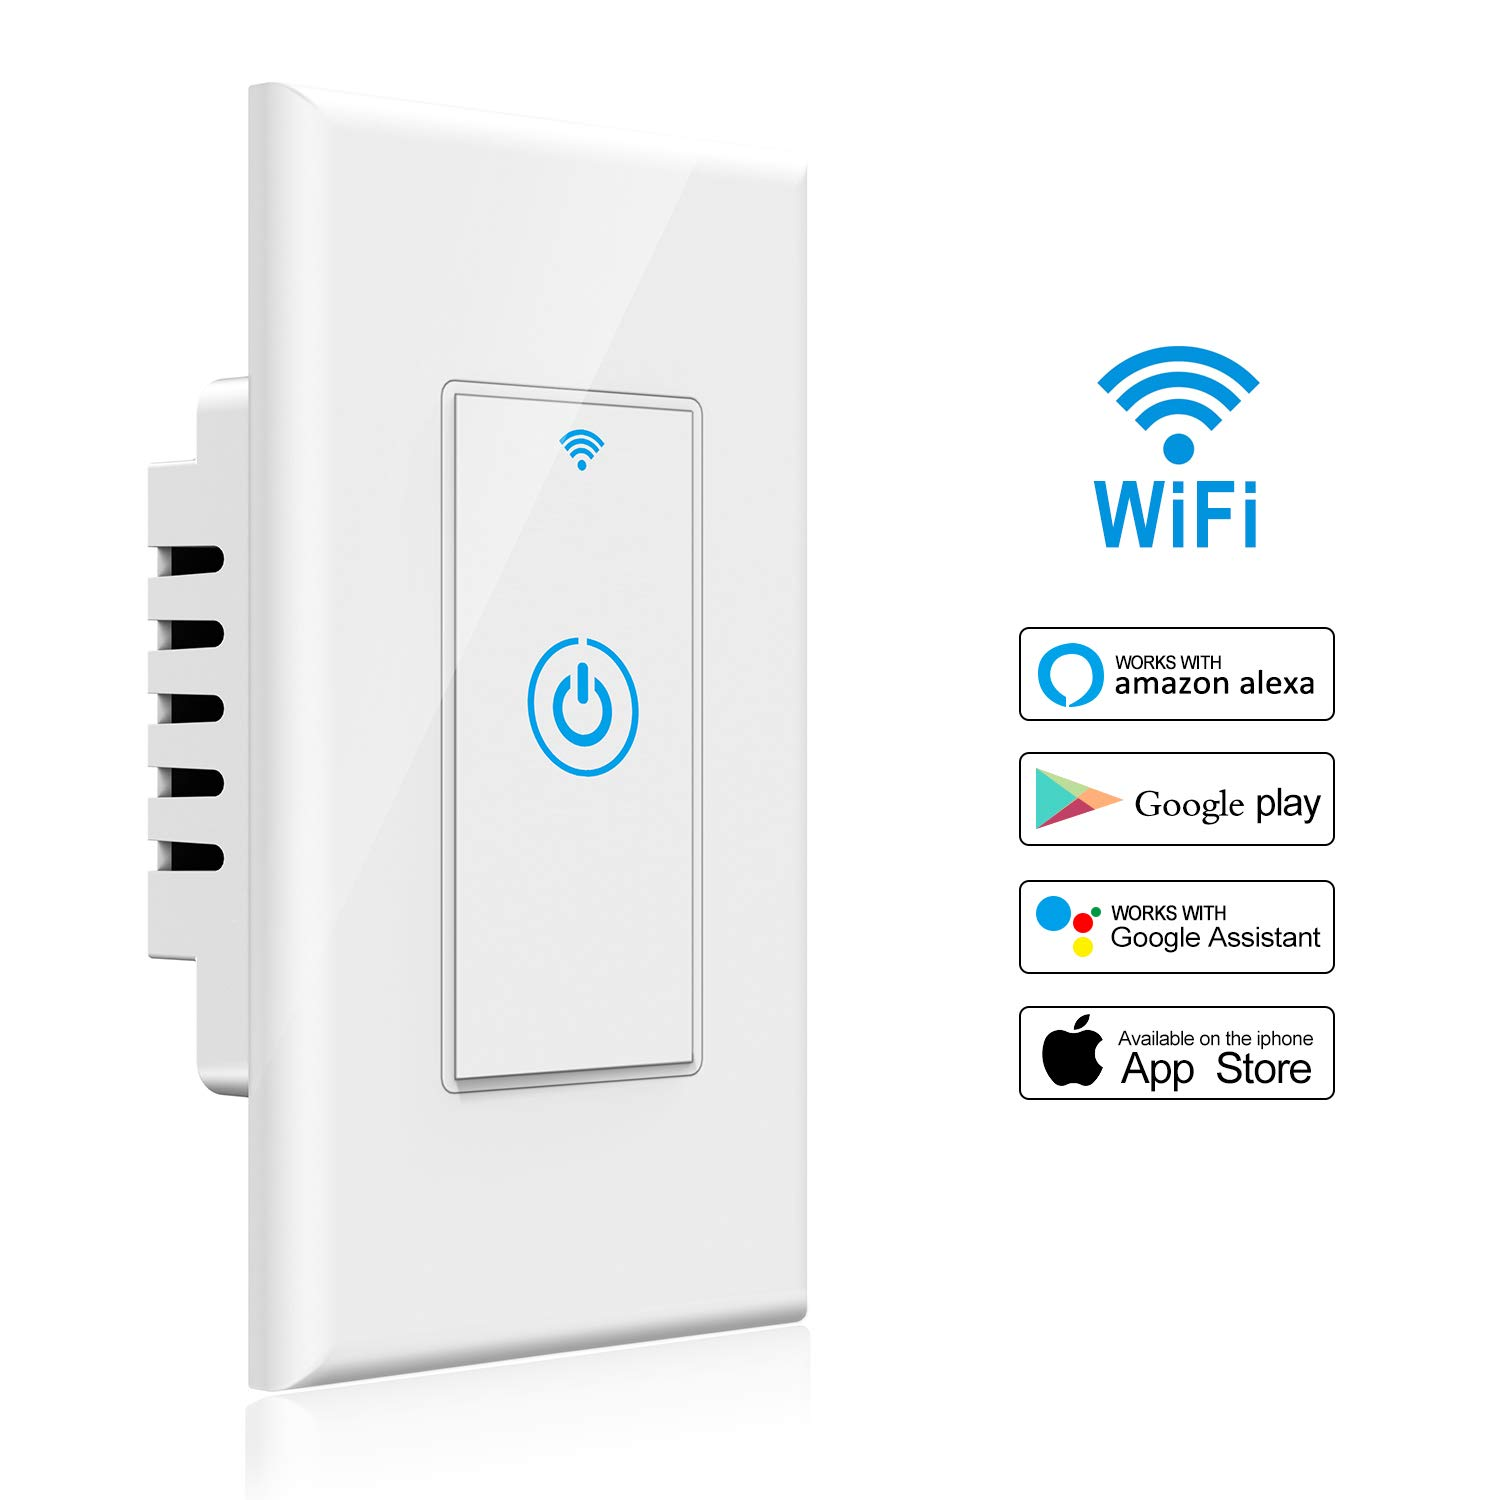 Smart Light Switch - Gosund Smart Wifi Light Wall Switch 15A Touch Timing Function Remote Control From Anywhere, Works with Alexa, Google Assistant And IFTTT, No Hub Required (1 pack)